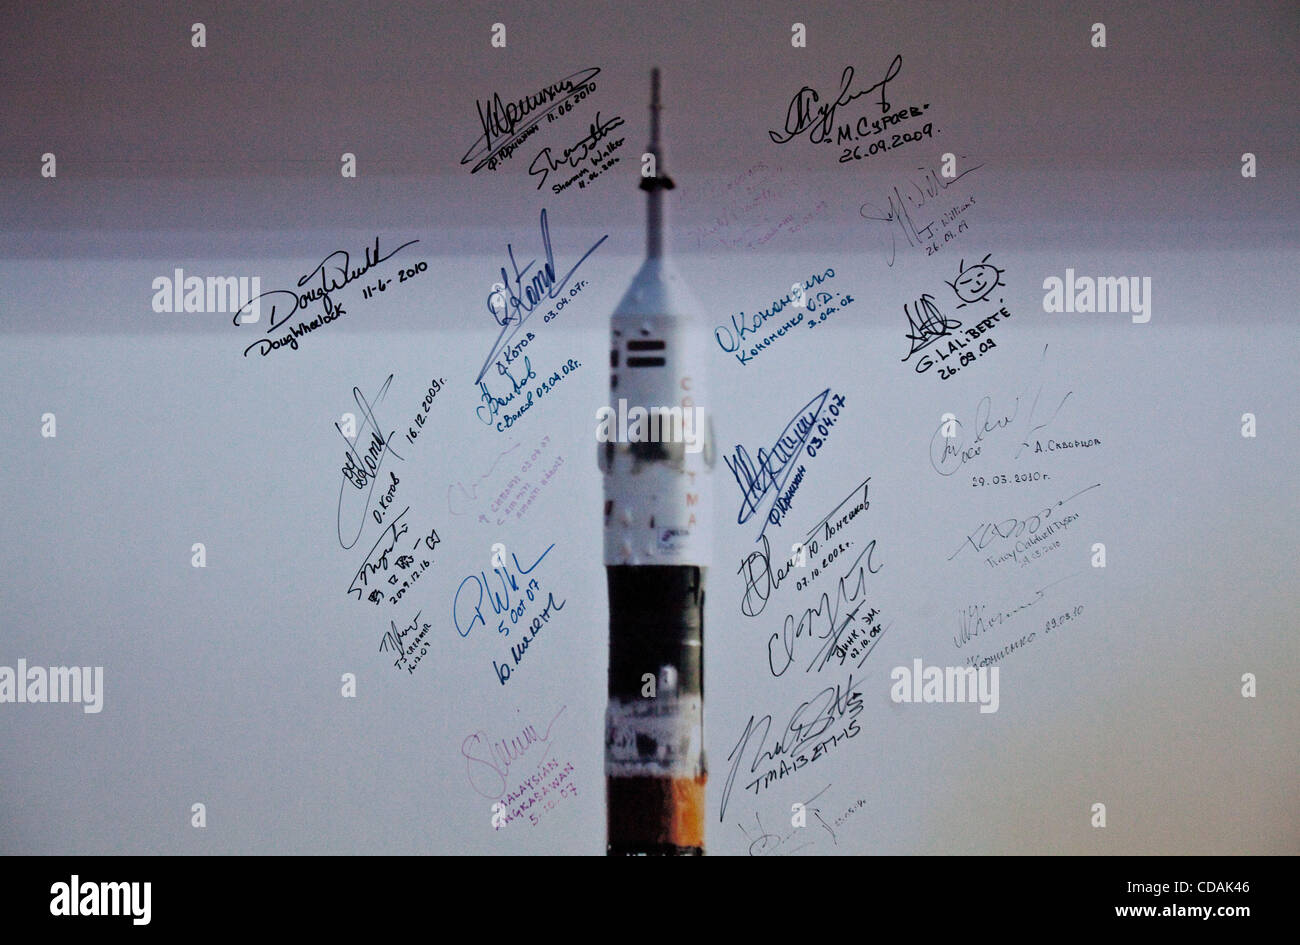 Sep 03, 2010 - Baikonur Cosmodrome, Kazakhstan - Poster showing Soyuz rocket with signatures of the cosmonauts that - Stock Image